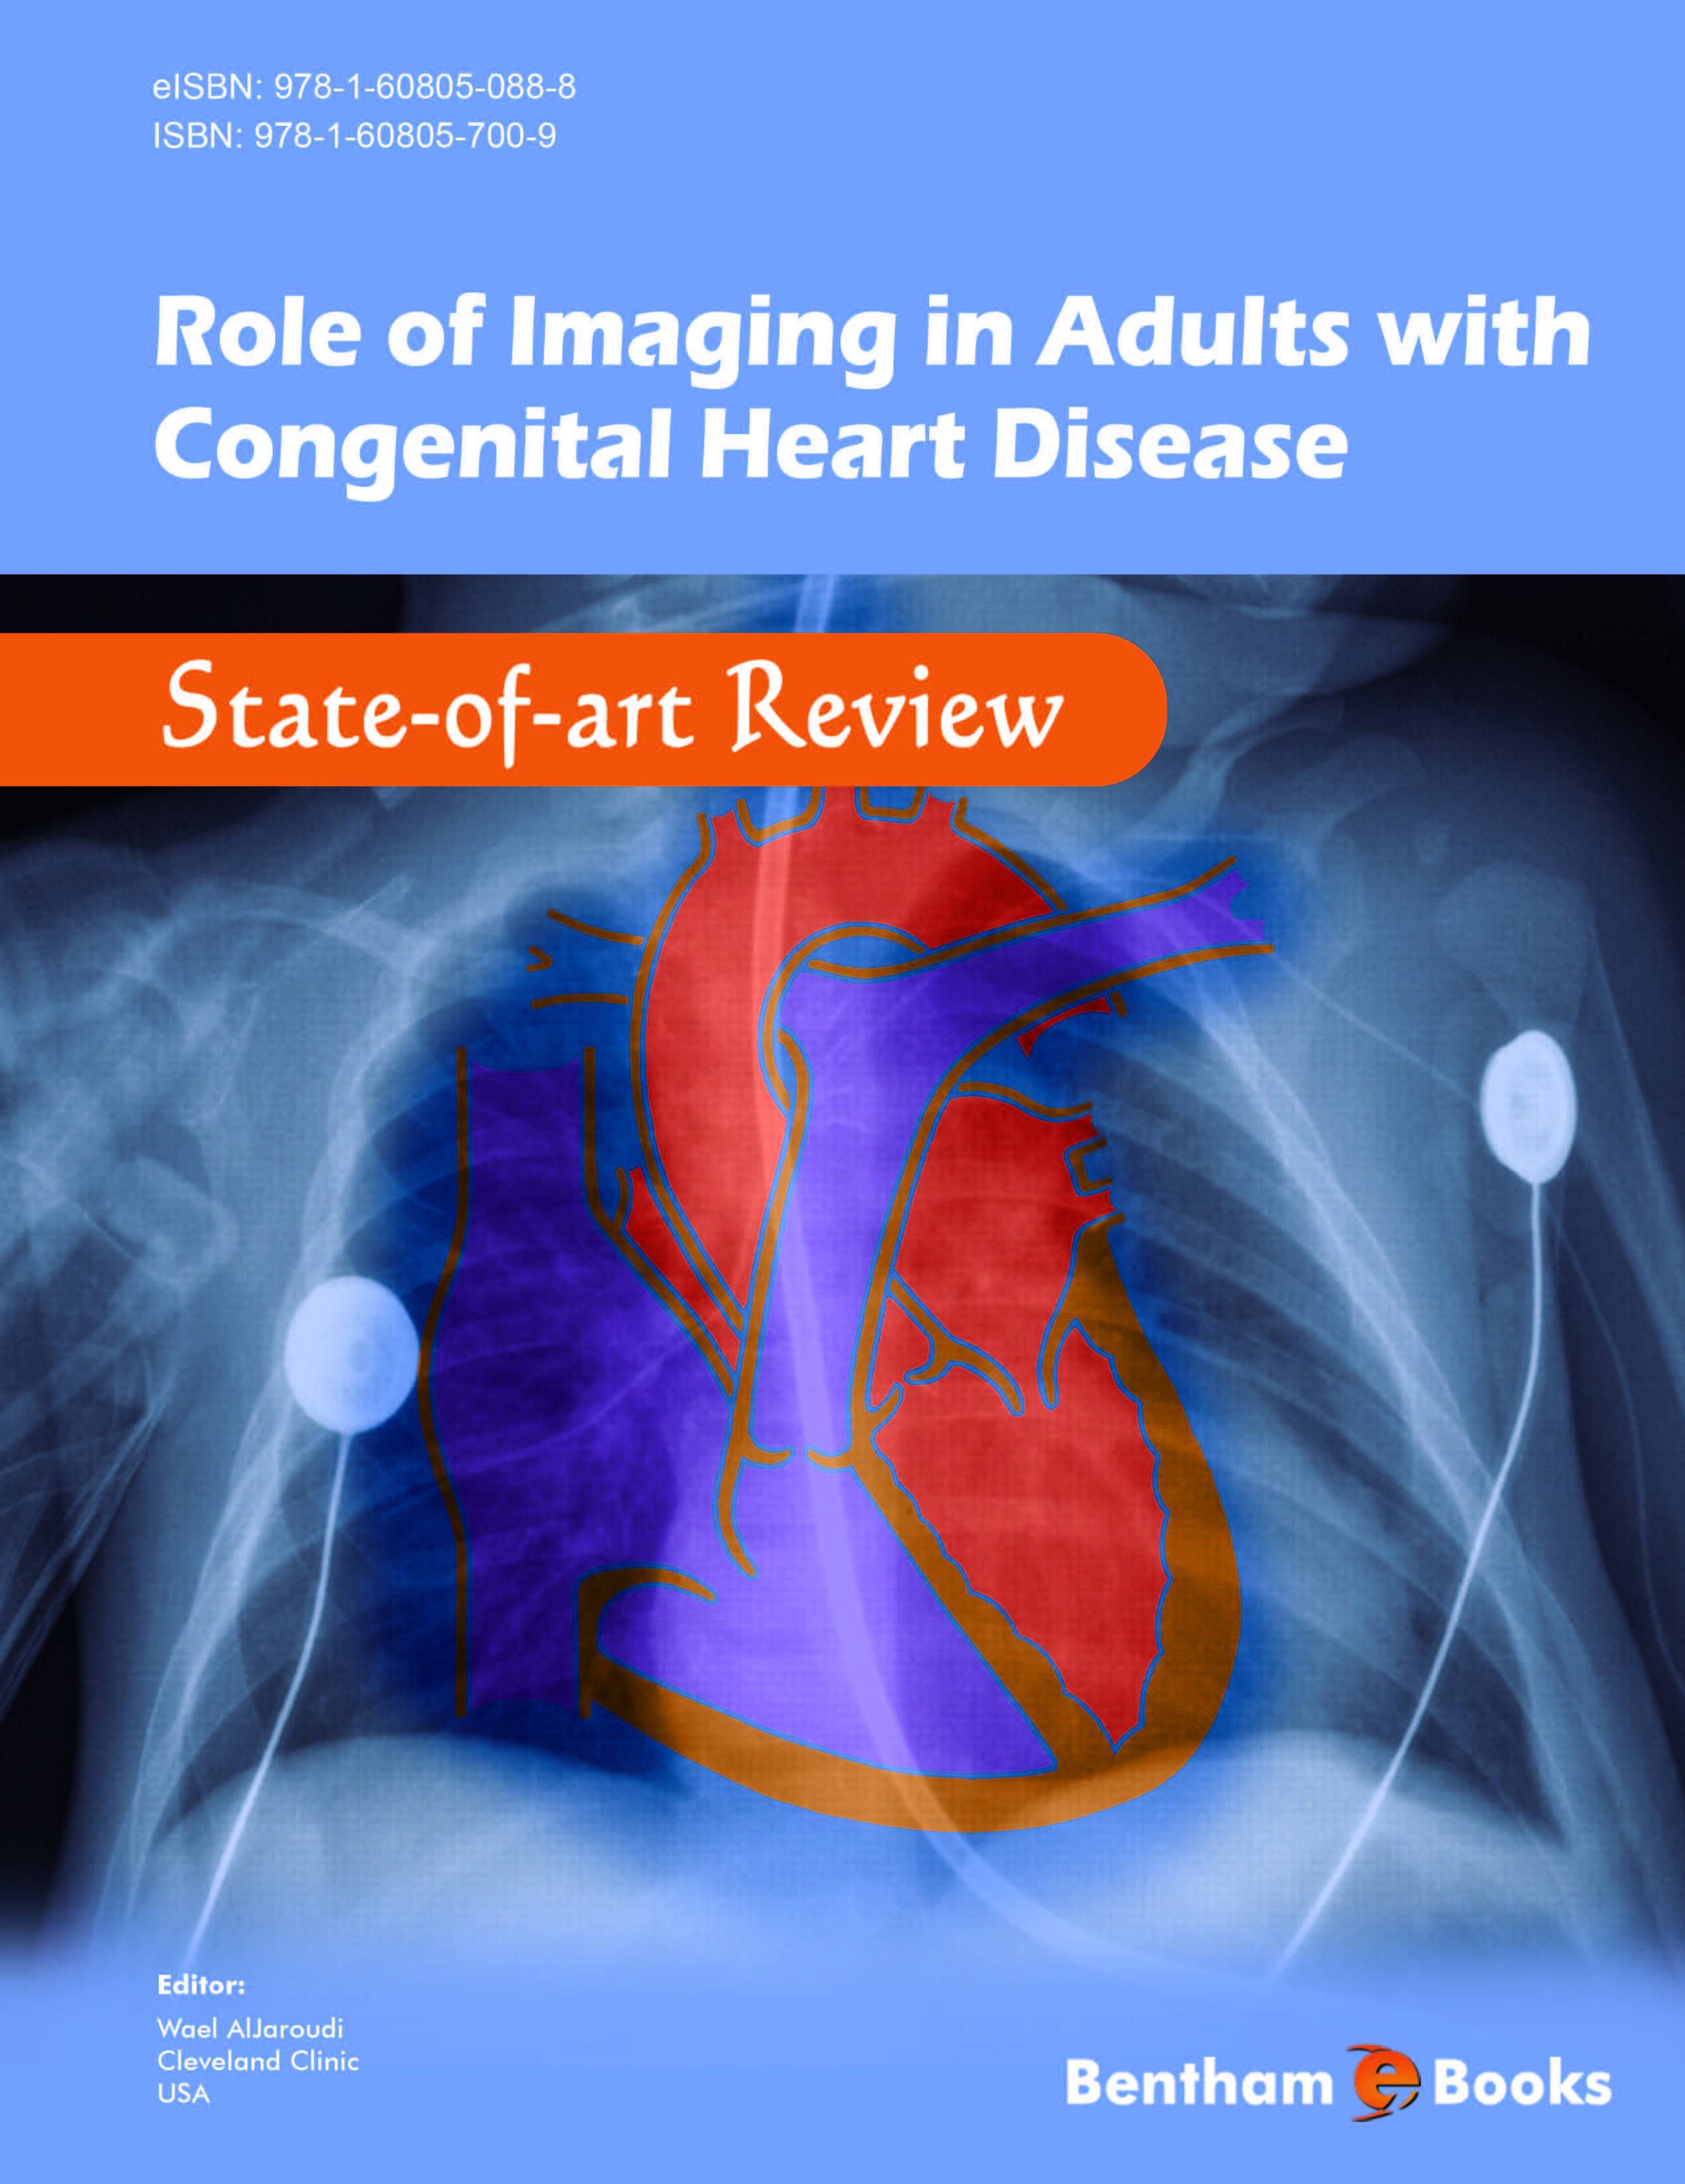 Role of Imaging in Adults with Congenital Heart Disease: State-of-art Review